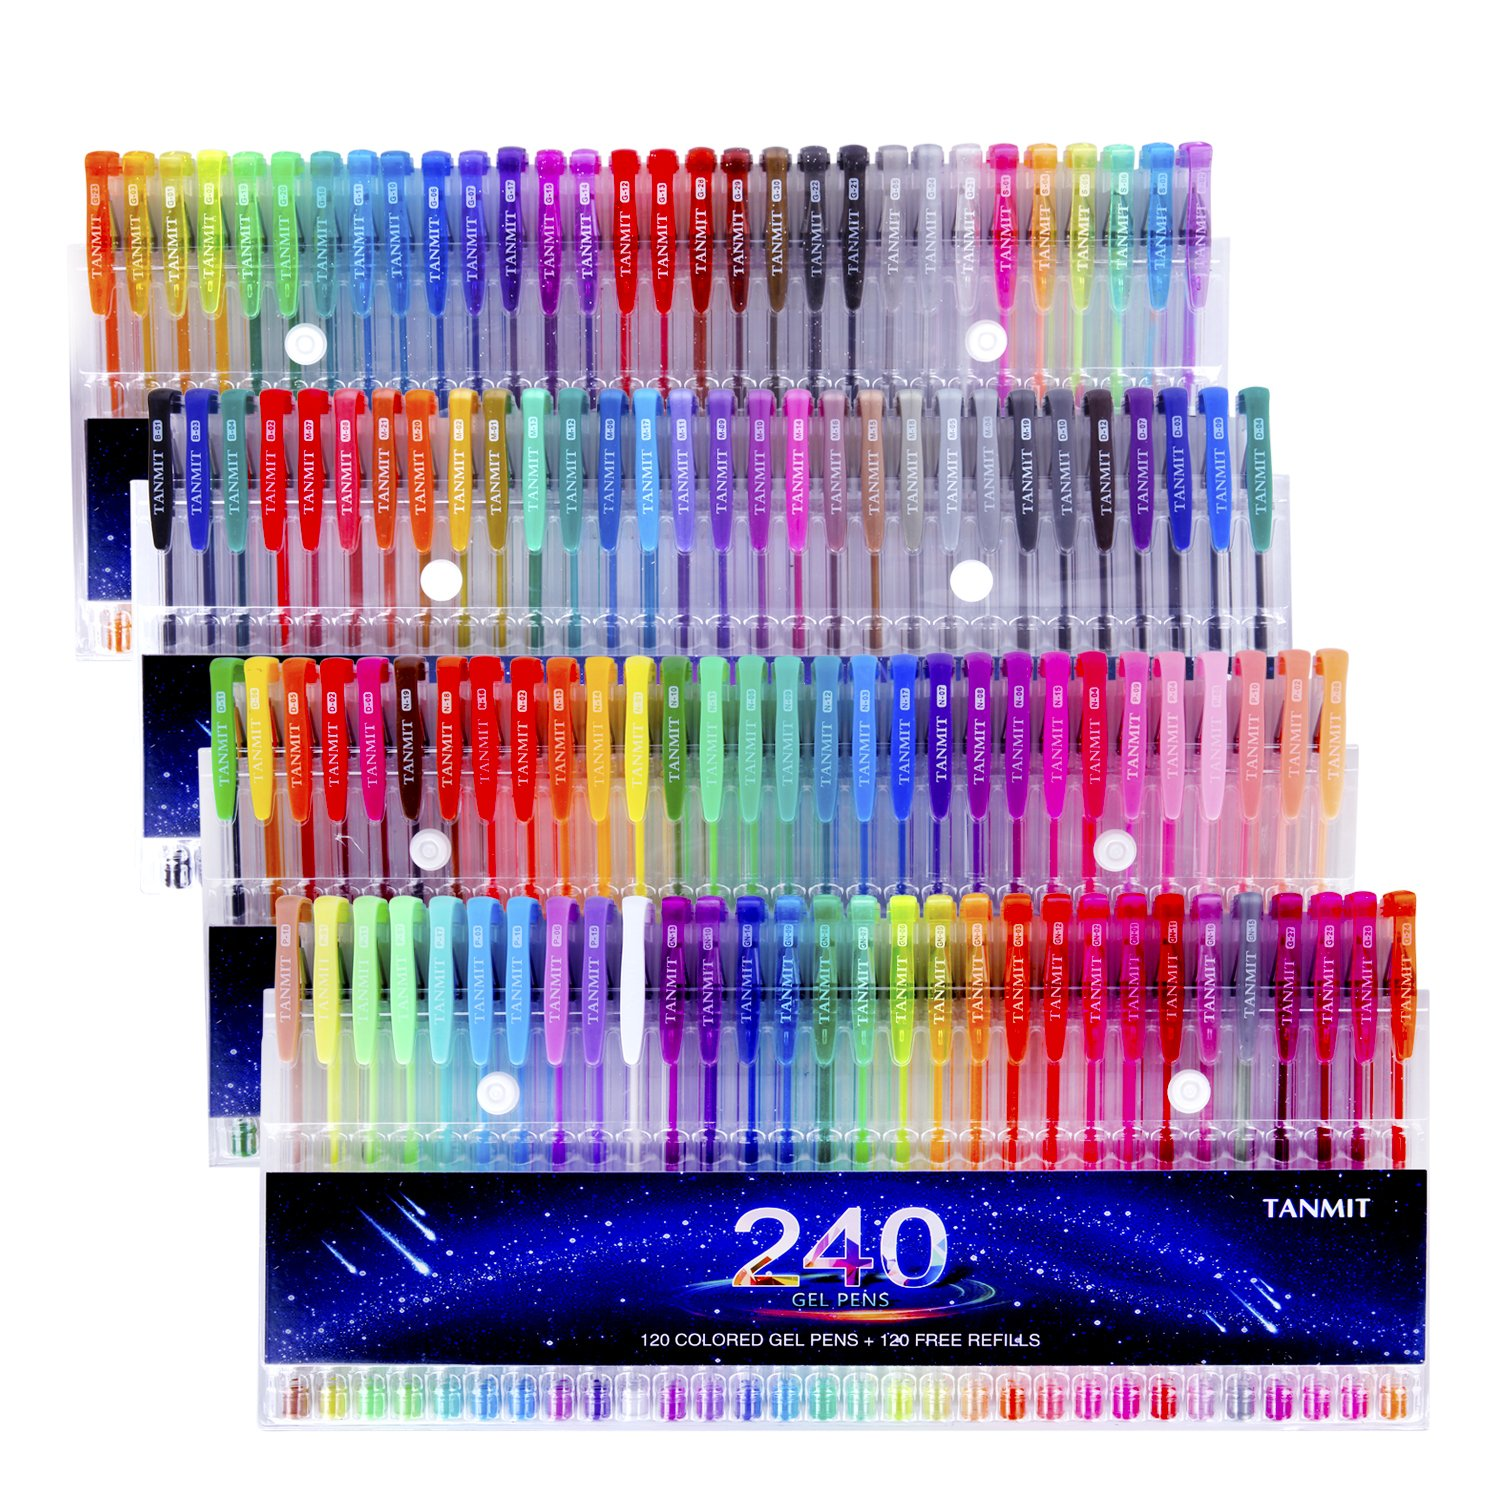 Tanmit 240 Gel Pens Set 120 Colored Gel Pen plus 120 Refills for Adults Coloring Books Drawing Art Markers (No Duplicates) by TANMIT